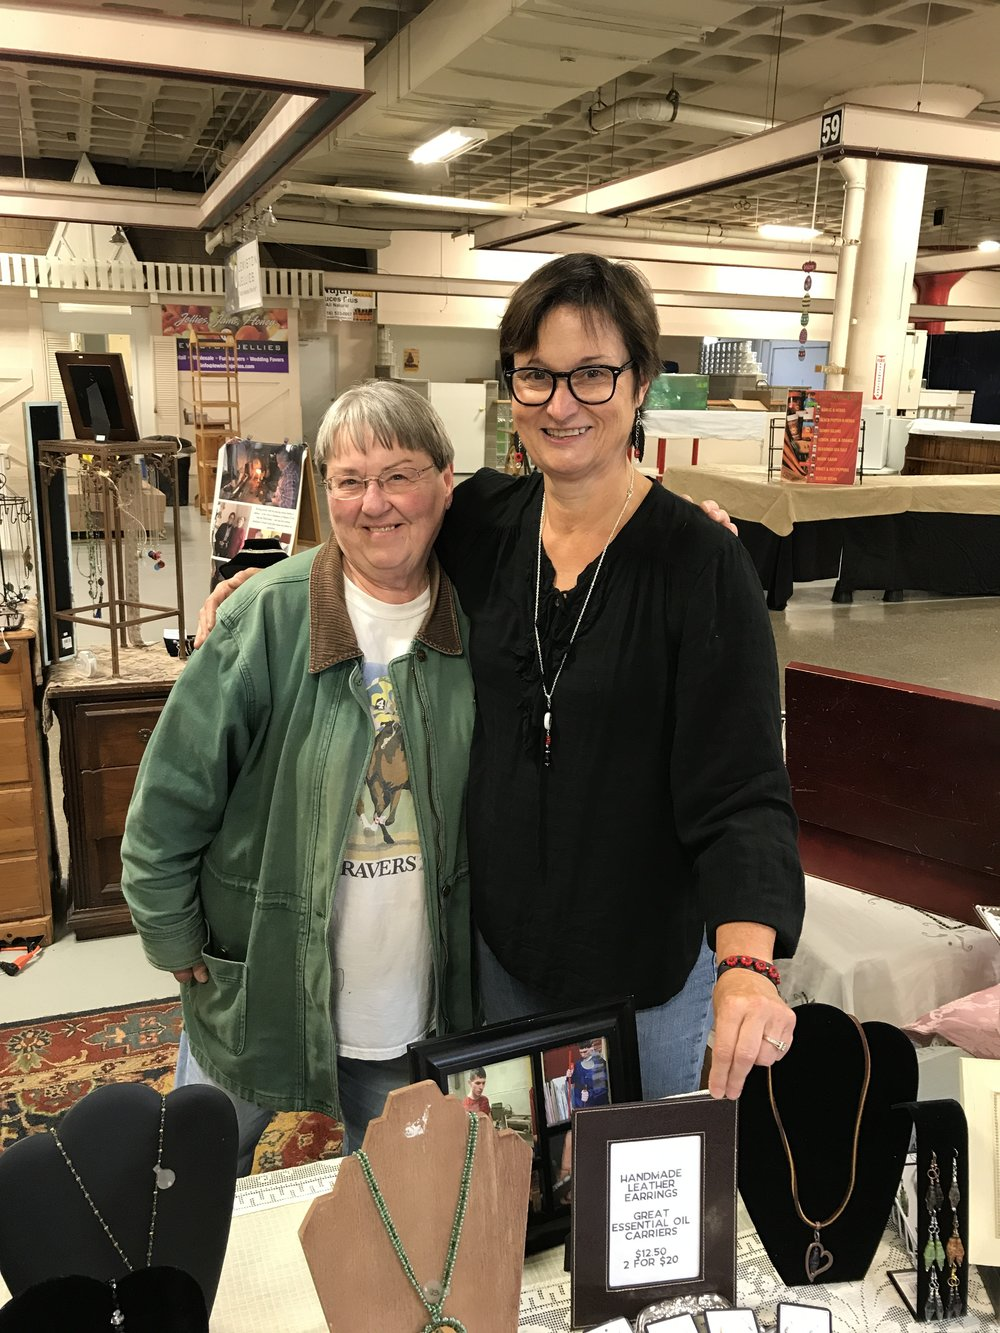 Linda Steffan - the wizard of all things leather - helps out every now and then at the Market — but her store is much cooler.